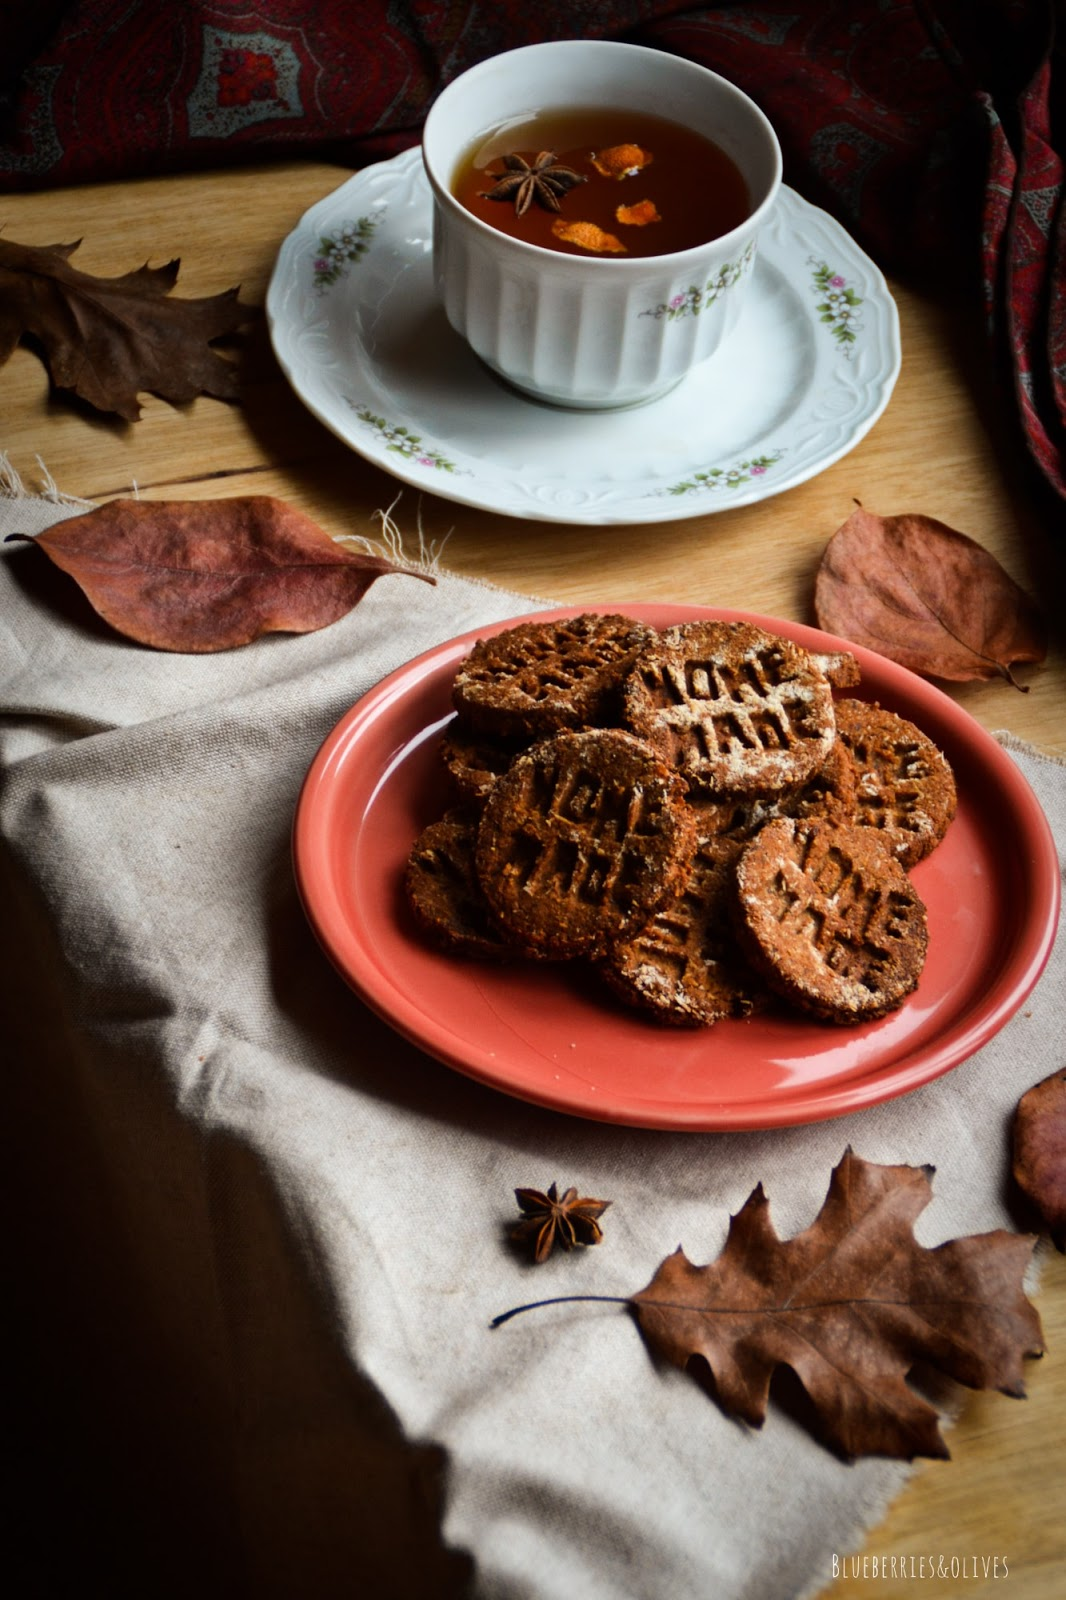 homemade cookies on red ceramic dish, dark background, old wood, piles books with red apple on top, porcelain mug with tea, star anise and orange peels